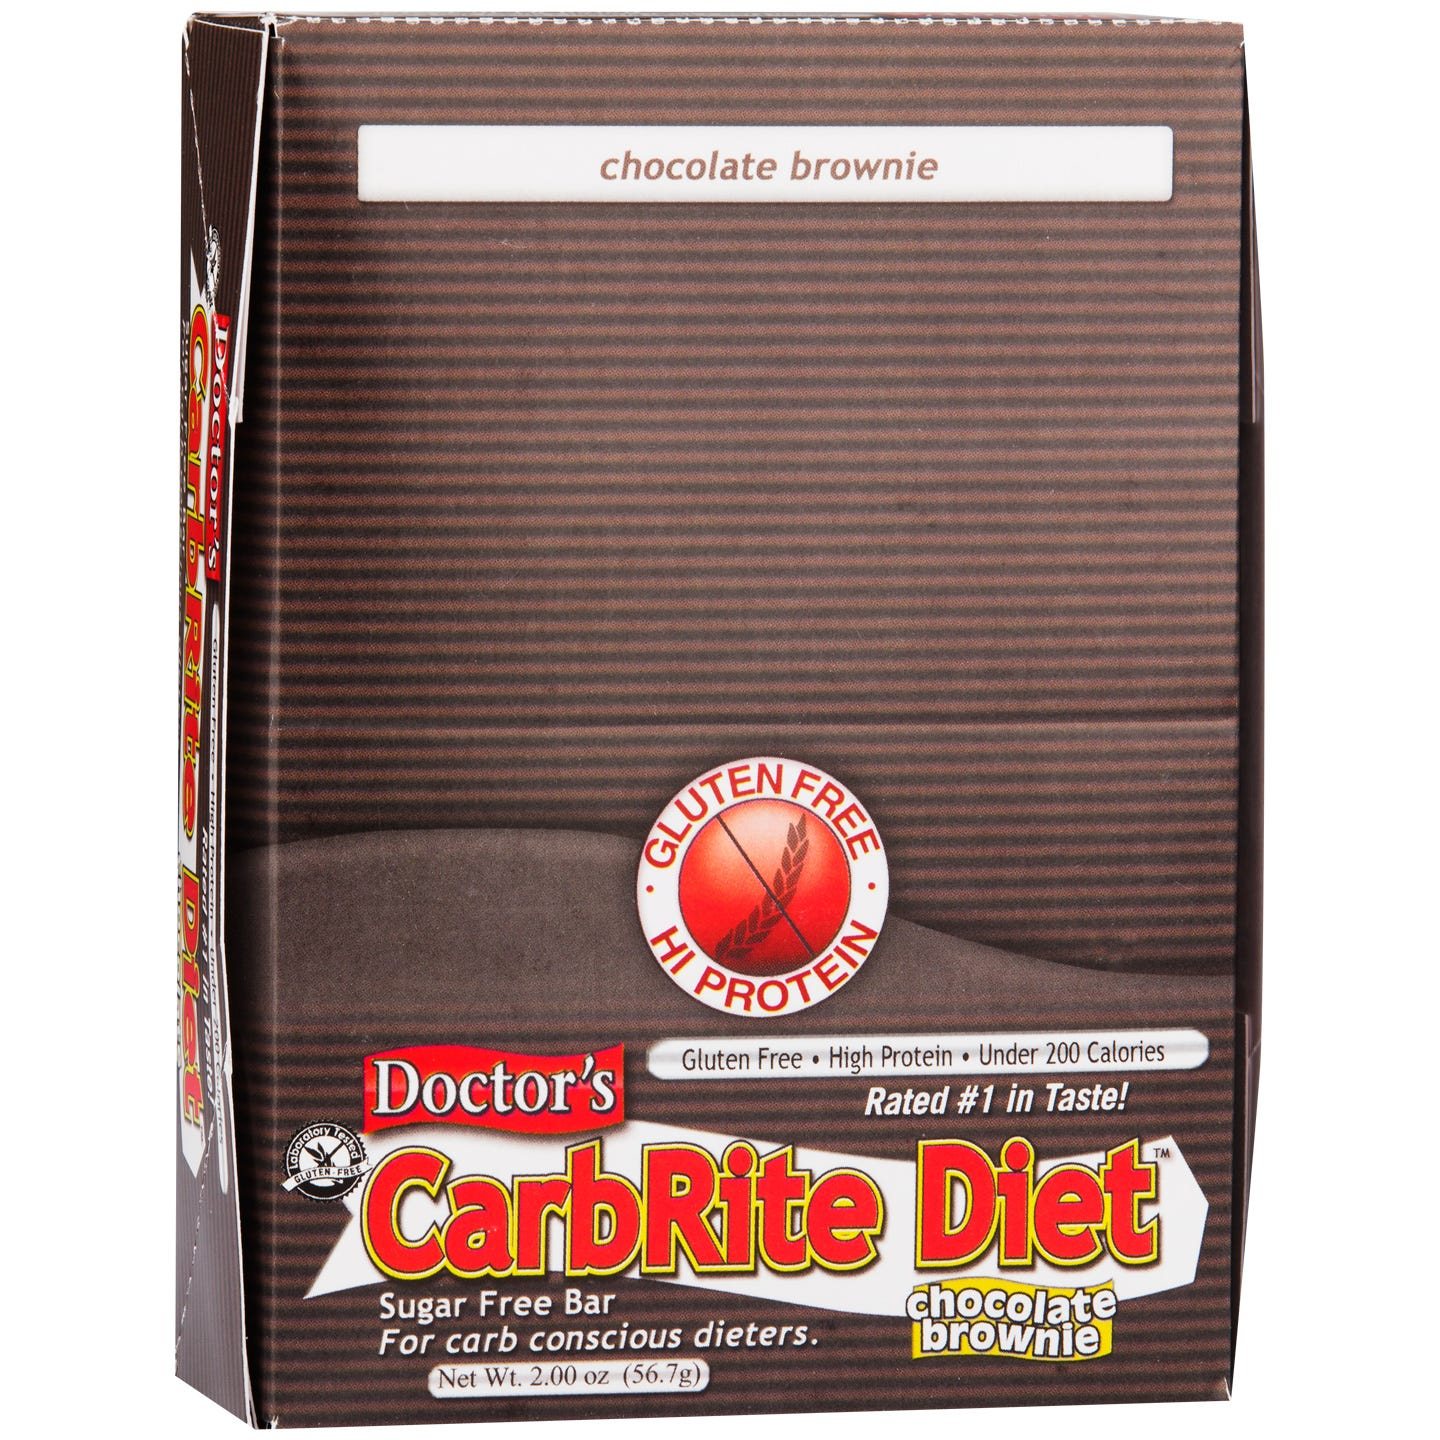 Protein Bars Chocolate Brownie (12 ct) - Doctor's CarbRite Diet - Rapid Diet Weight Loss Products Shop